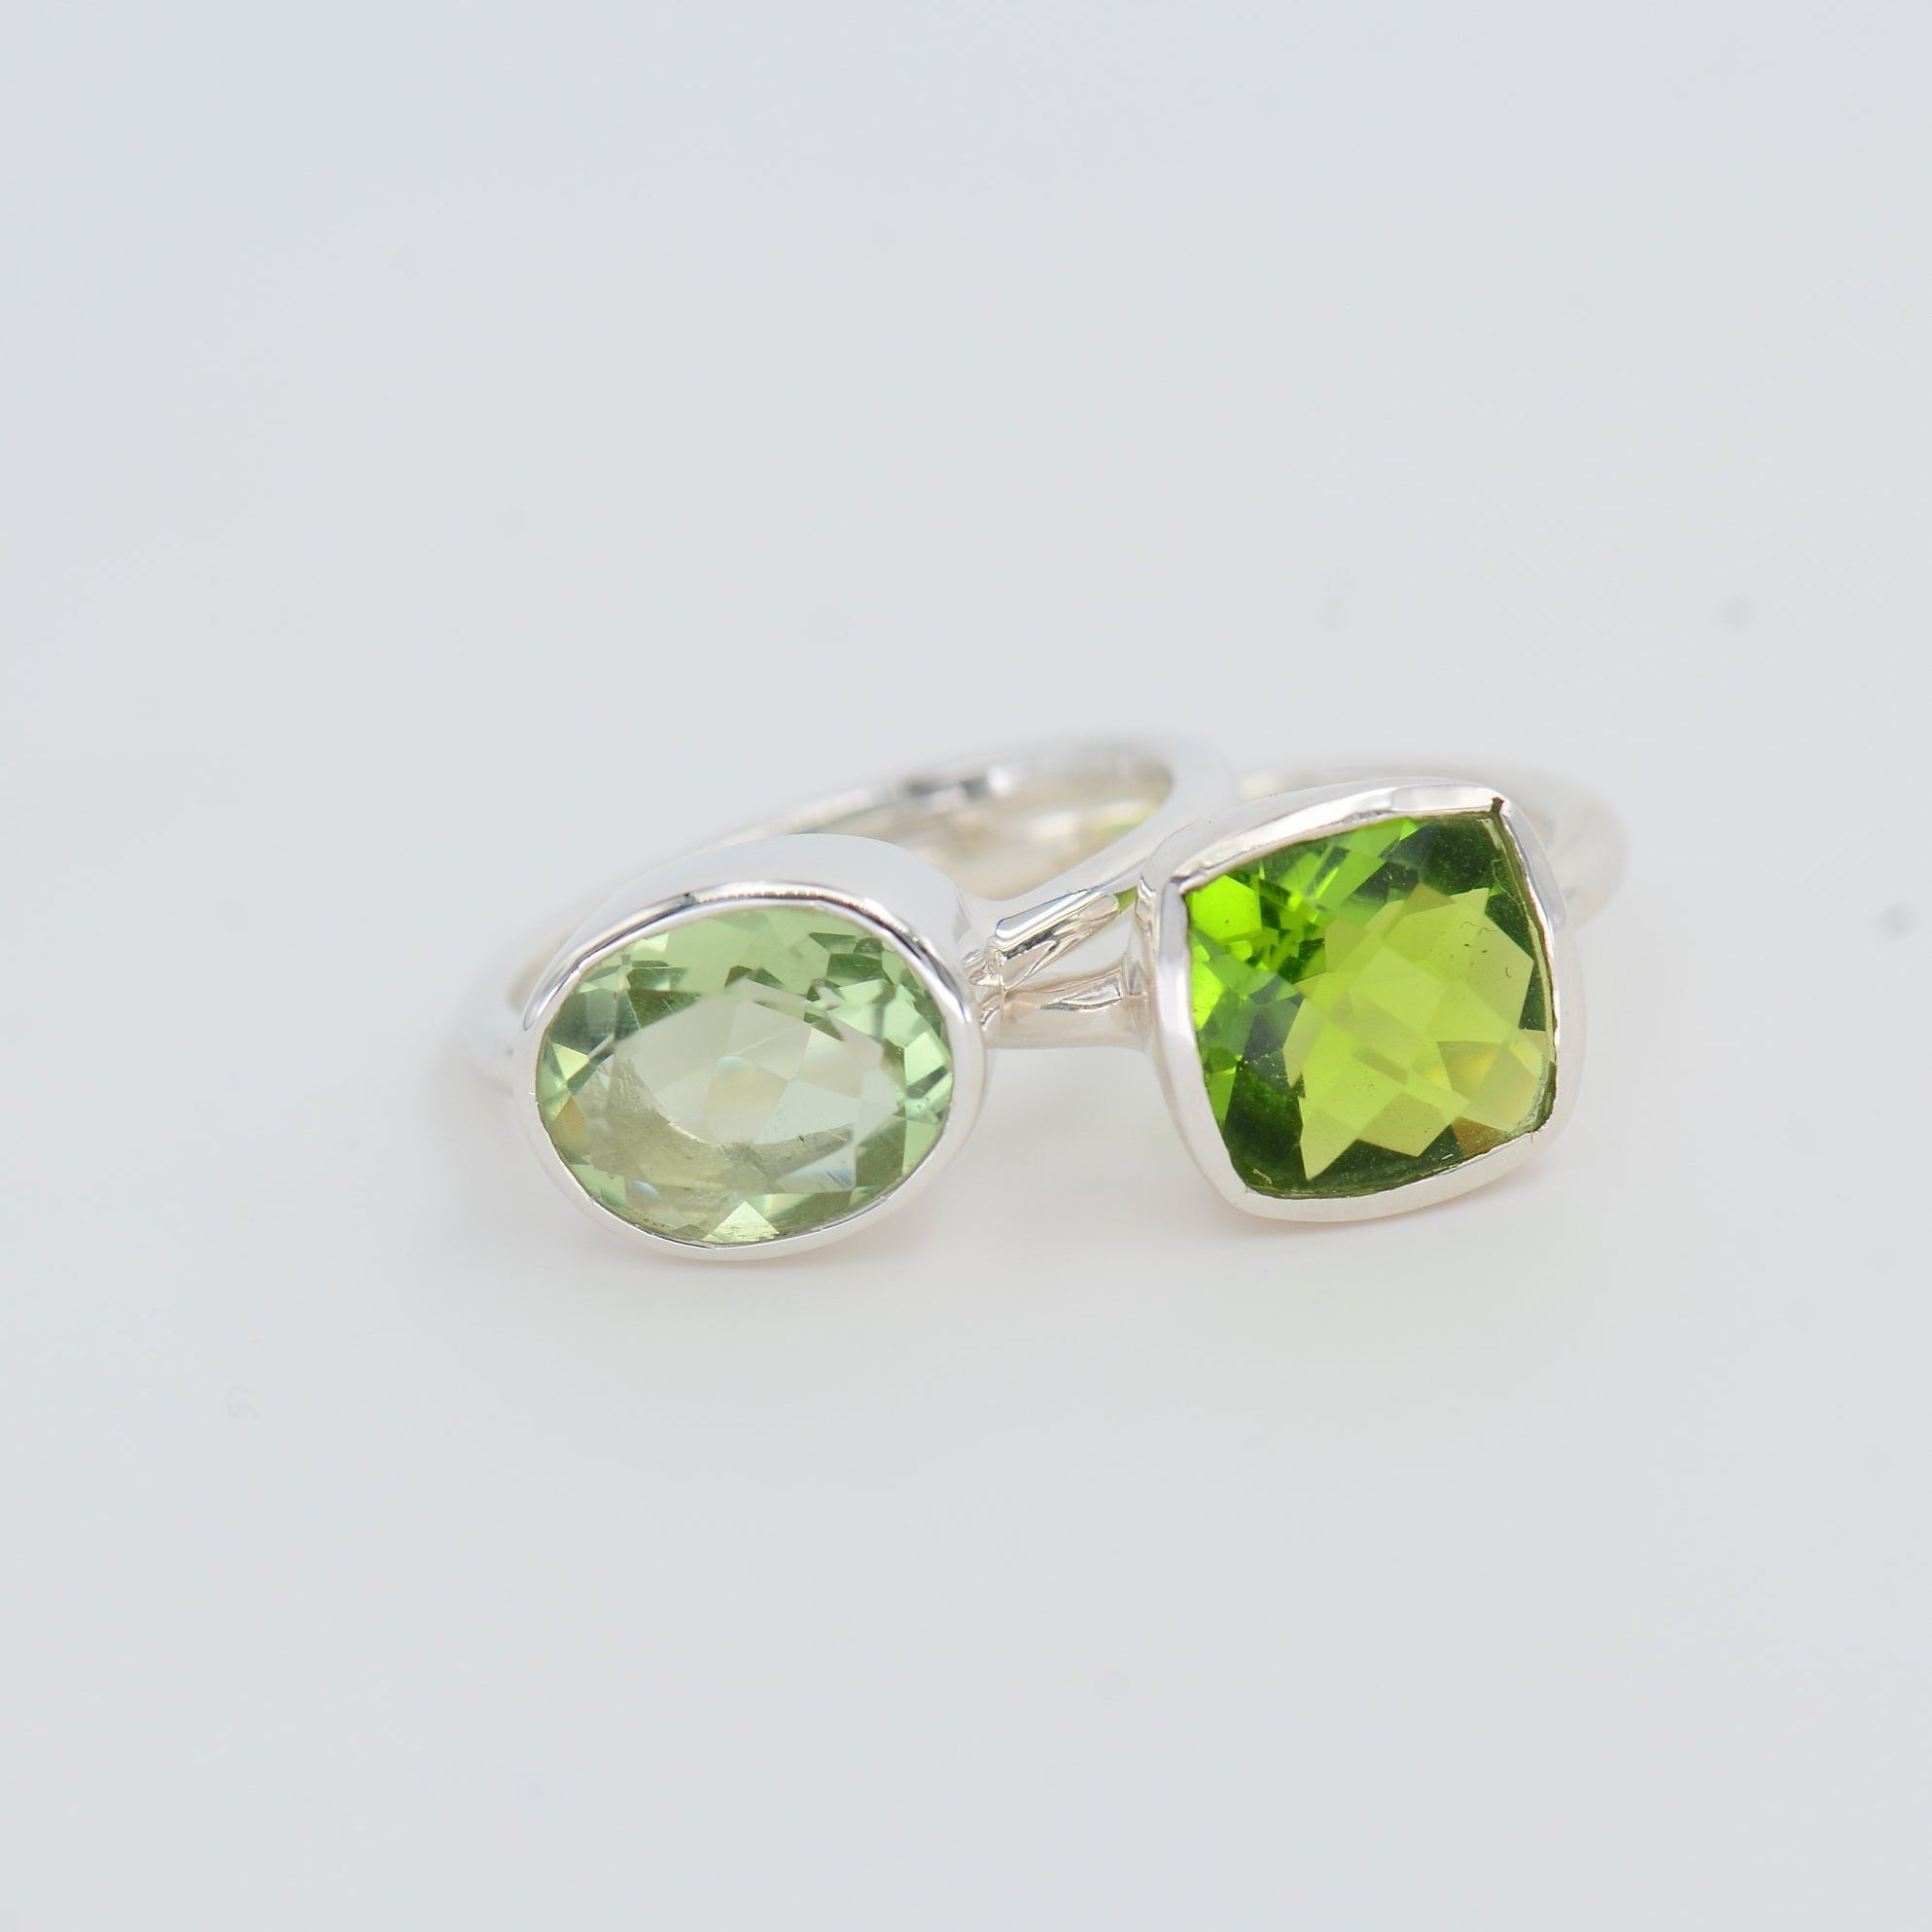 Green Amethyst Ring, Peridot Ring, August Birthstone ring, Sterling silver stackable Ring, Everyday Ring, Bezel set ring, Square ring